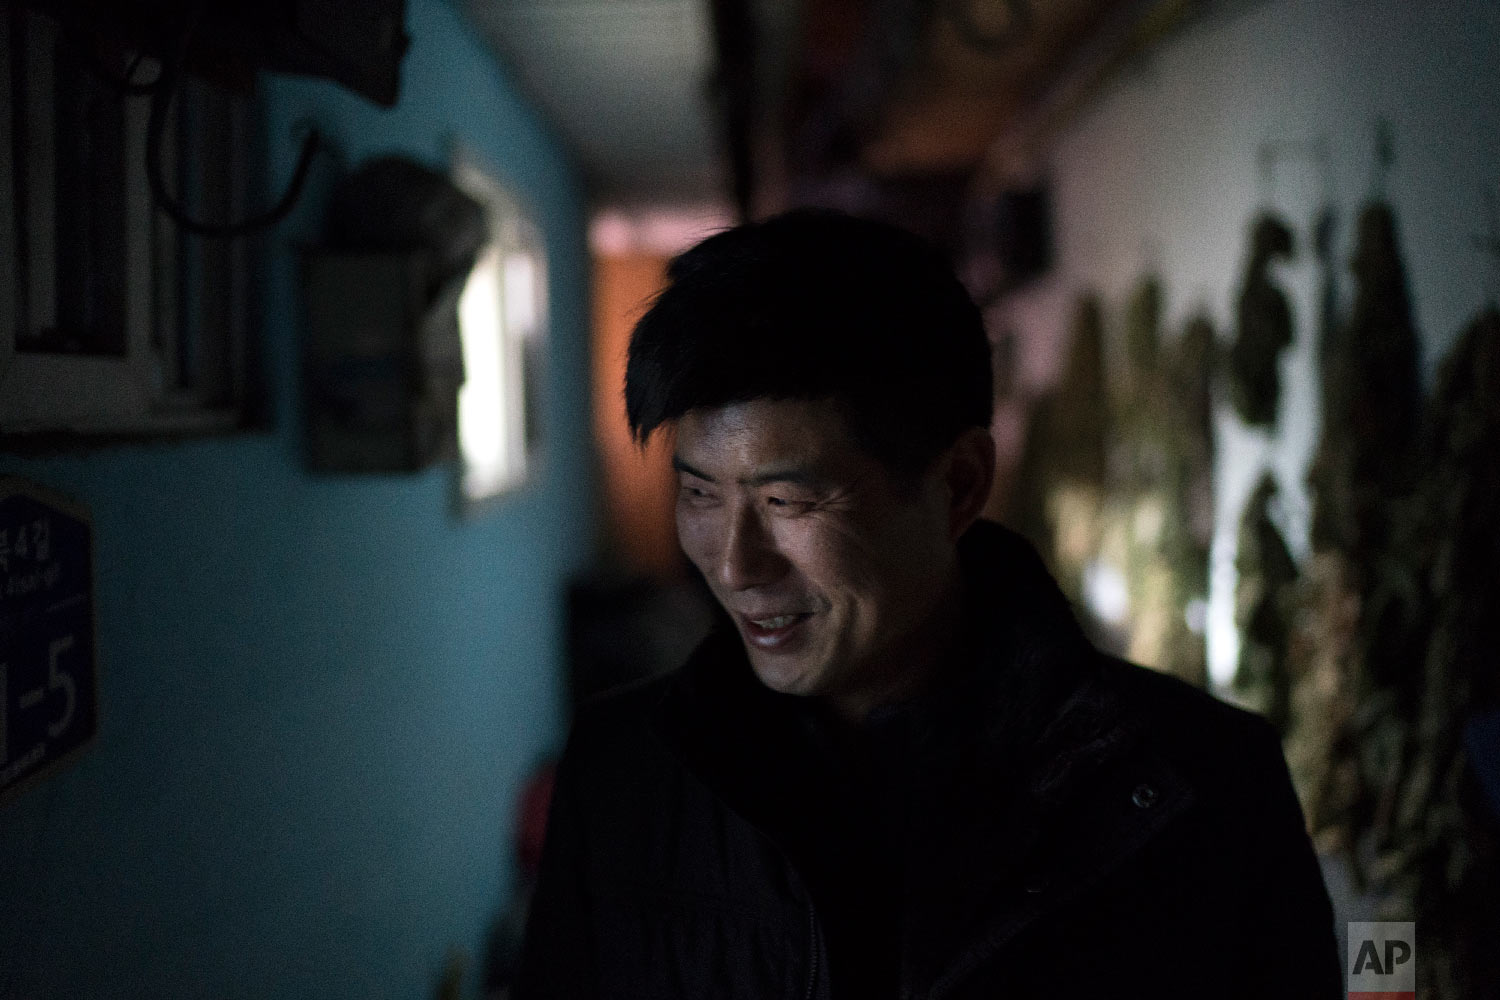 Lee Sang-kyu, 52, stands in an alley outside his mother's house in the town of Sabuk, Jeongseon county, South Korea, Thursday, Feb. 15, 2018. (AP Photo/Felipe Dana)